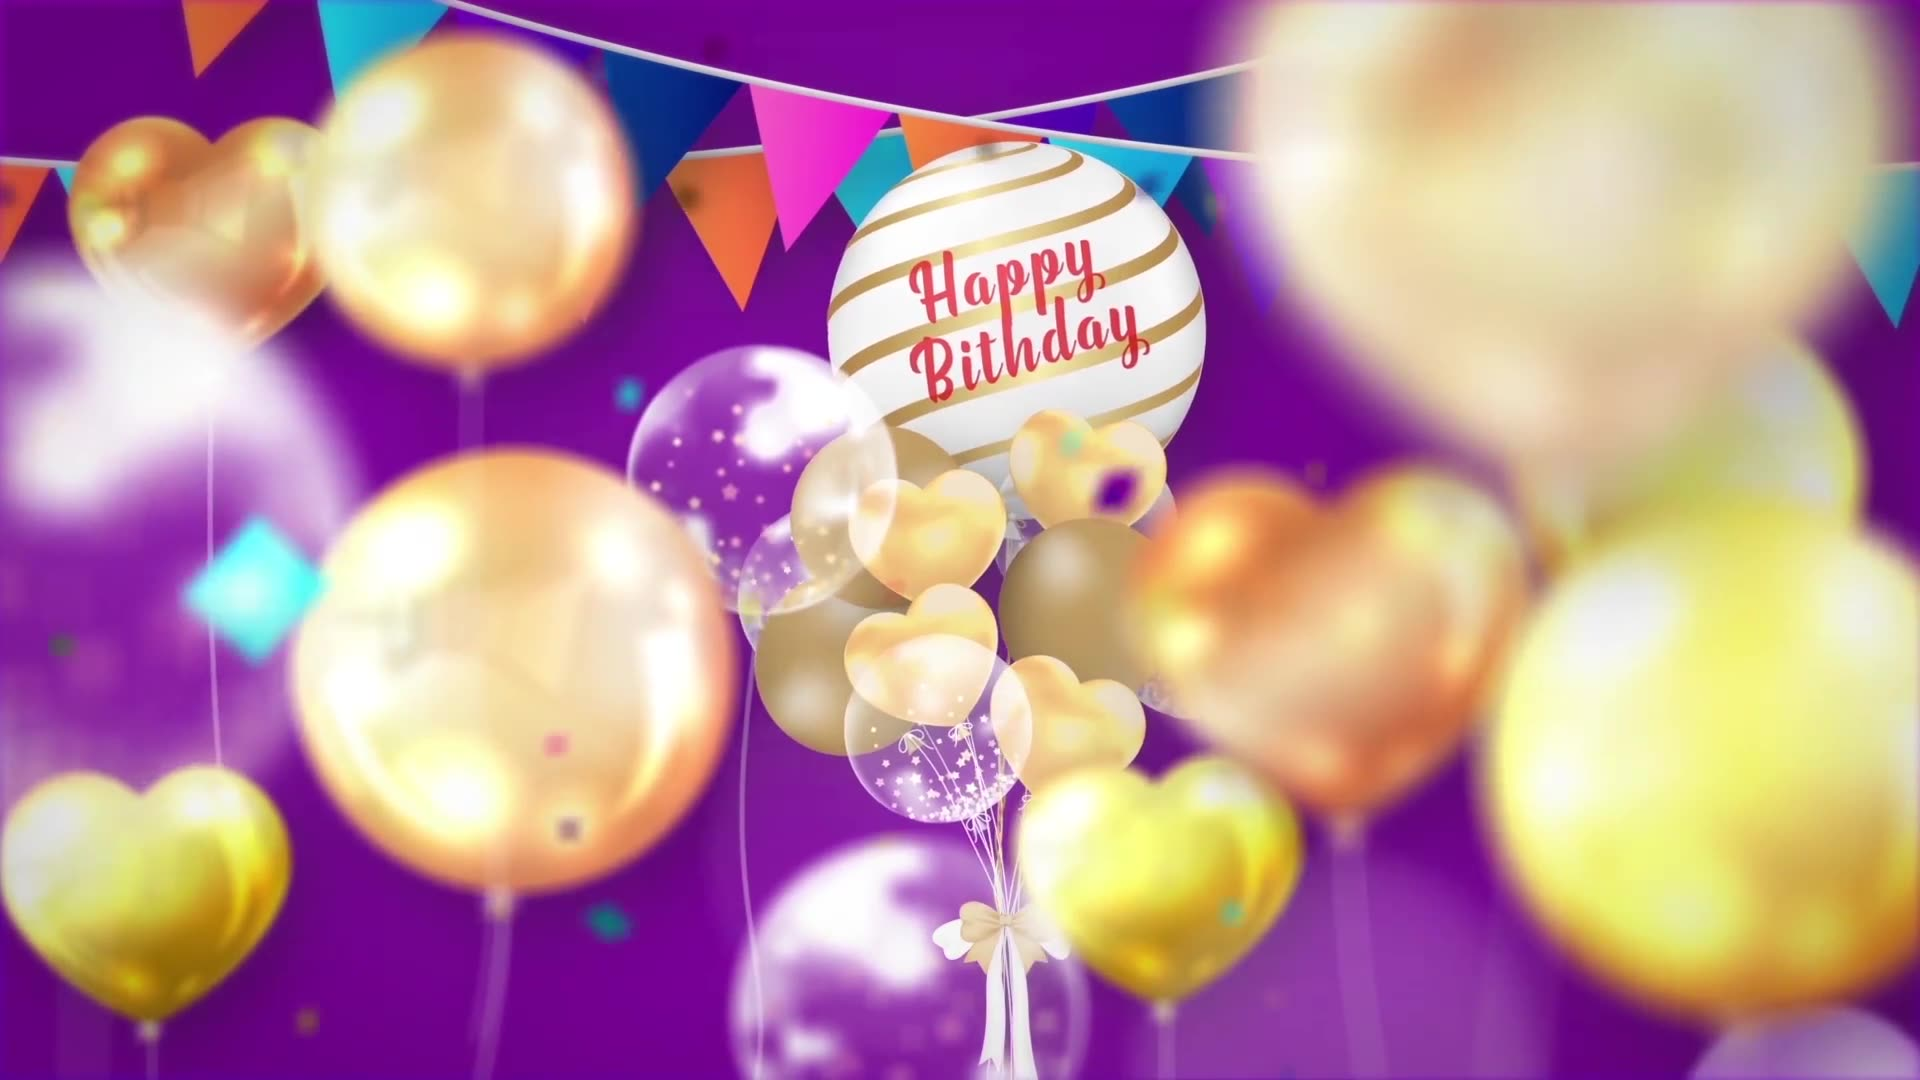 Happy Birthday Opener Videohive 31642133 After Effects Image 3